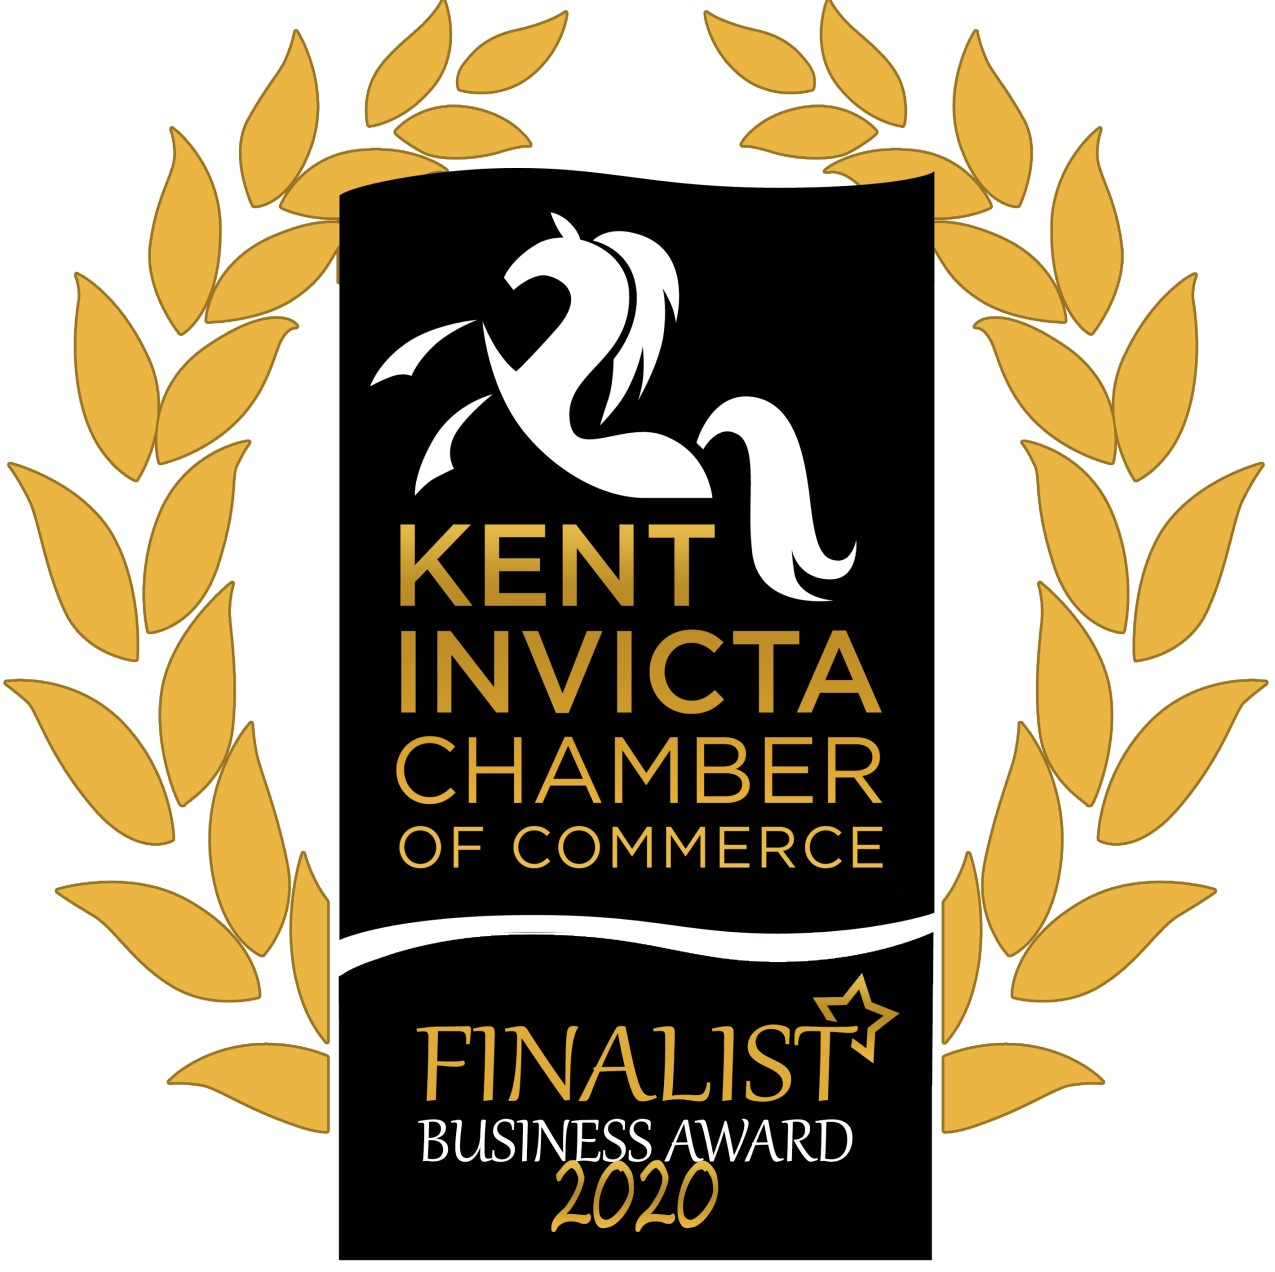 DMP-LLP Kent Invicta Chamber Business Award logo